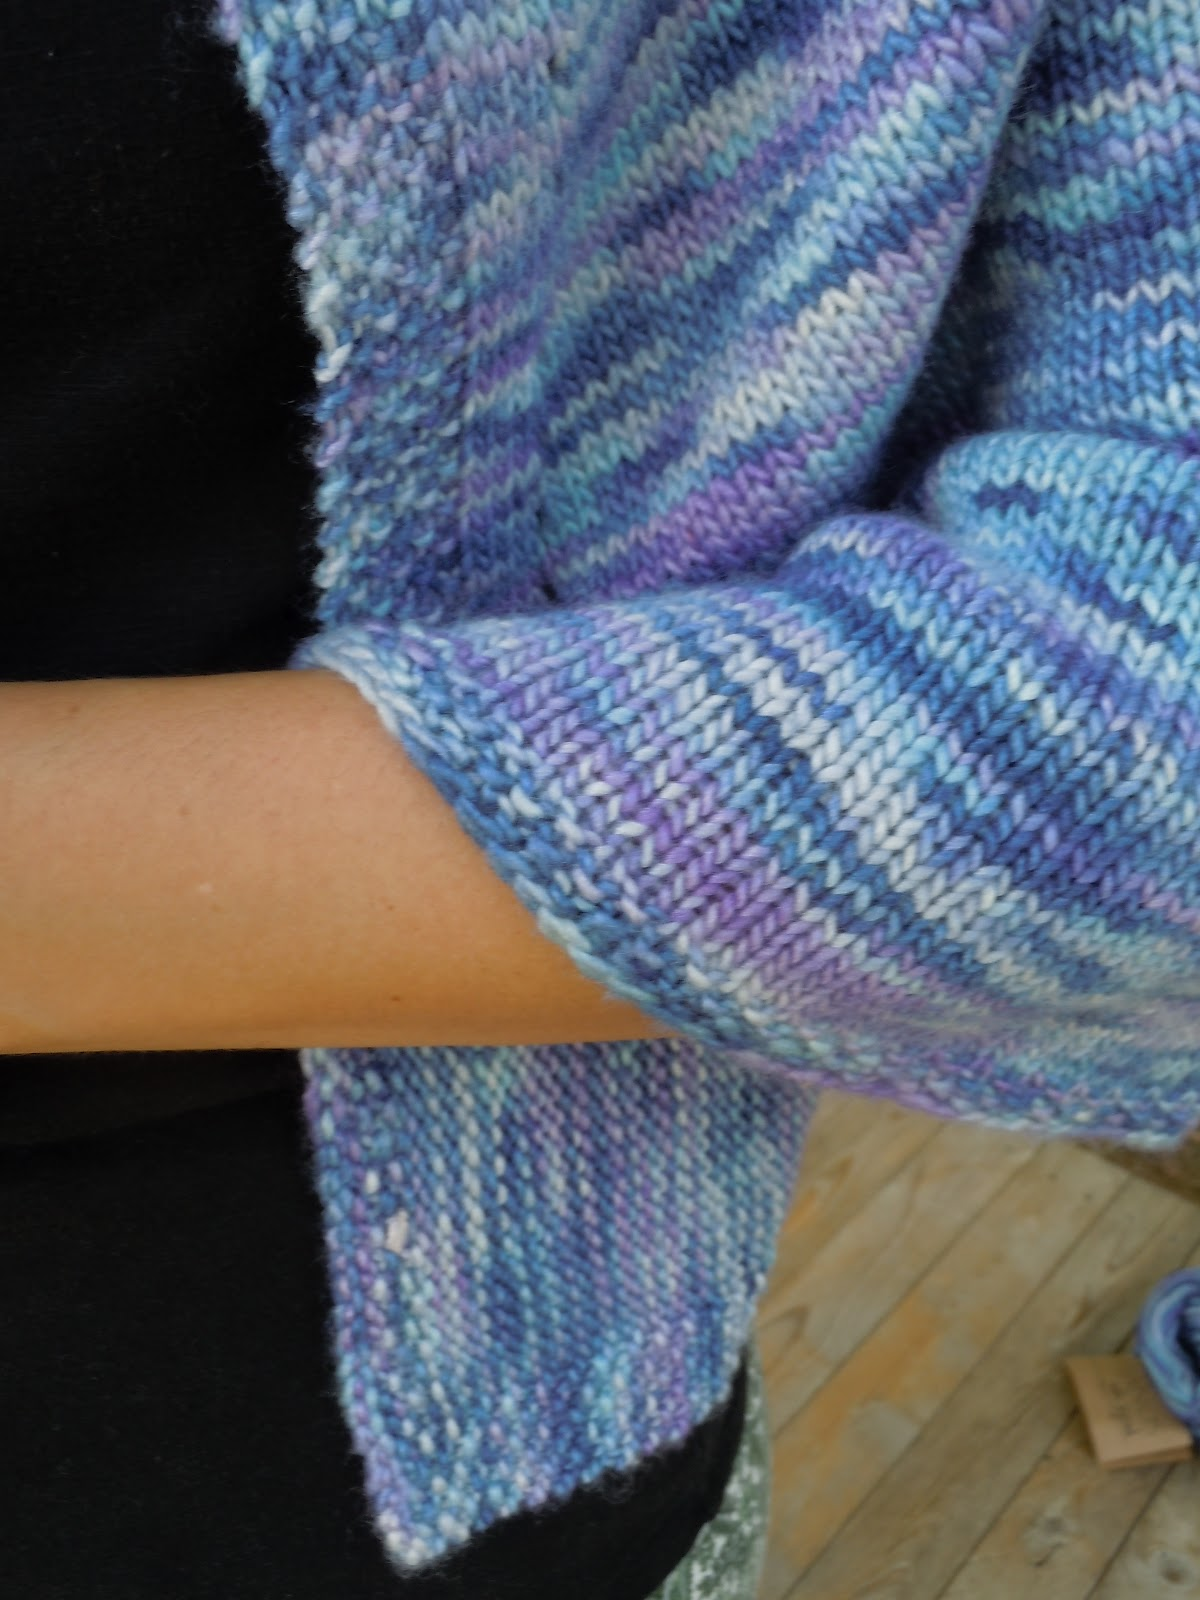 Dove Knitting Pattern : Spirit of a Dove: Spirit of a Dove Prayer Shawl and Mindfulness Instructions